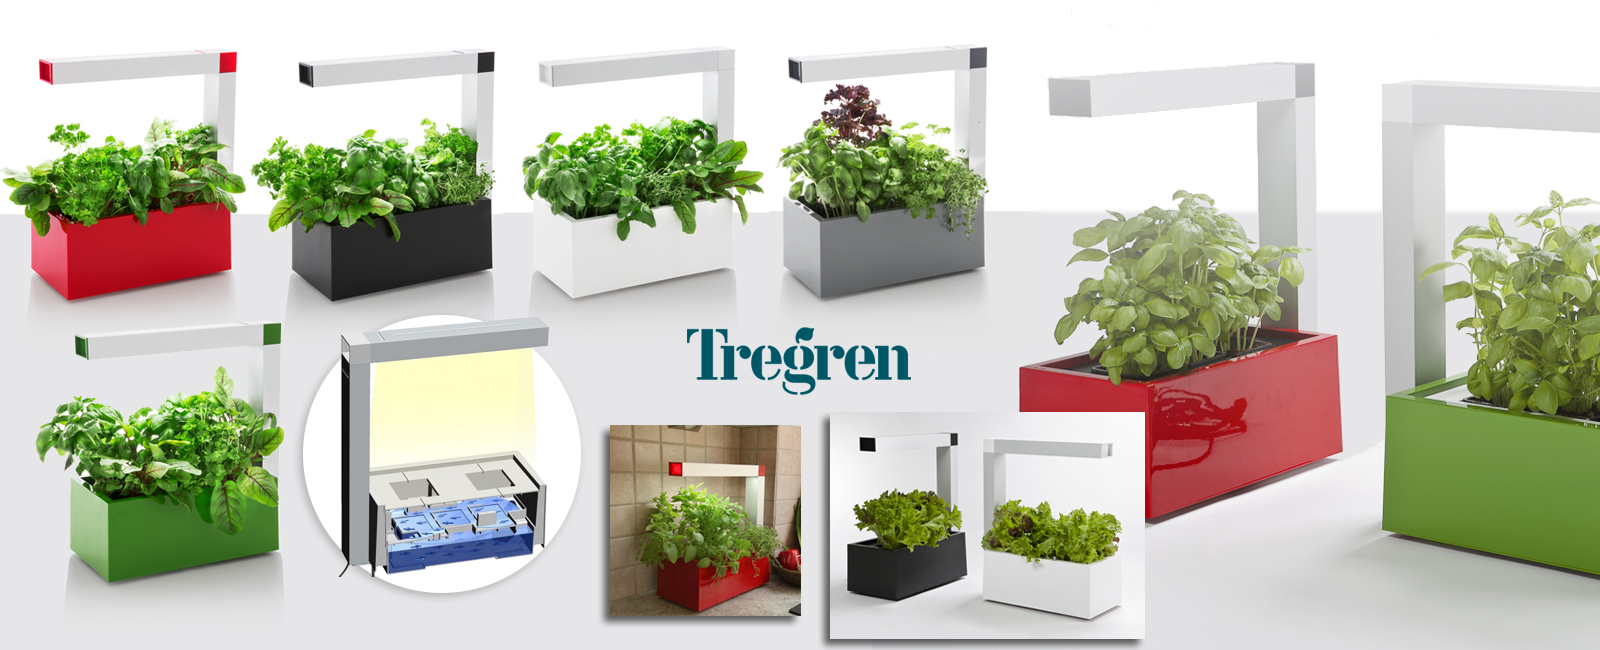 tregren potager de cuisine herbie. Black Bedroom Furniture Sets. Home Design Ideas